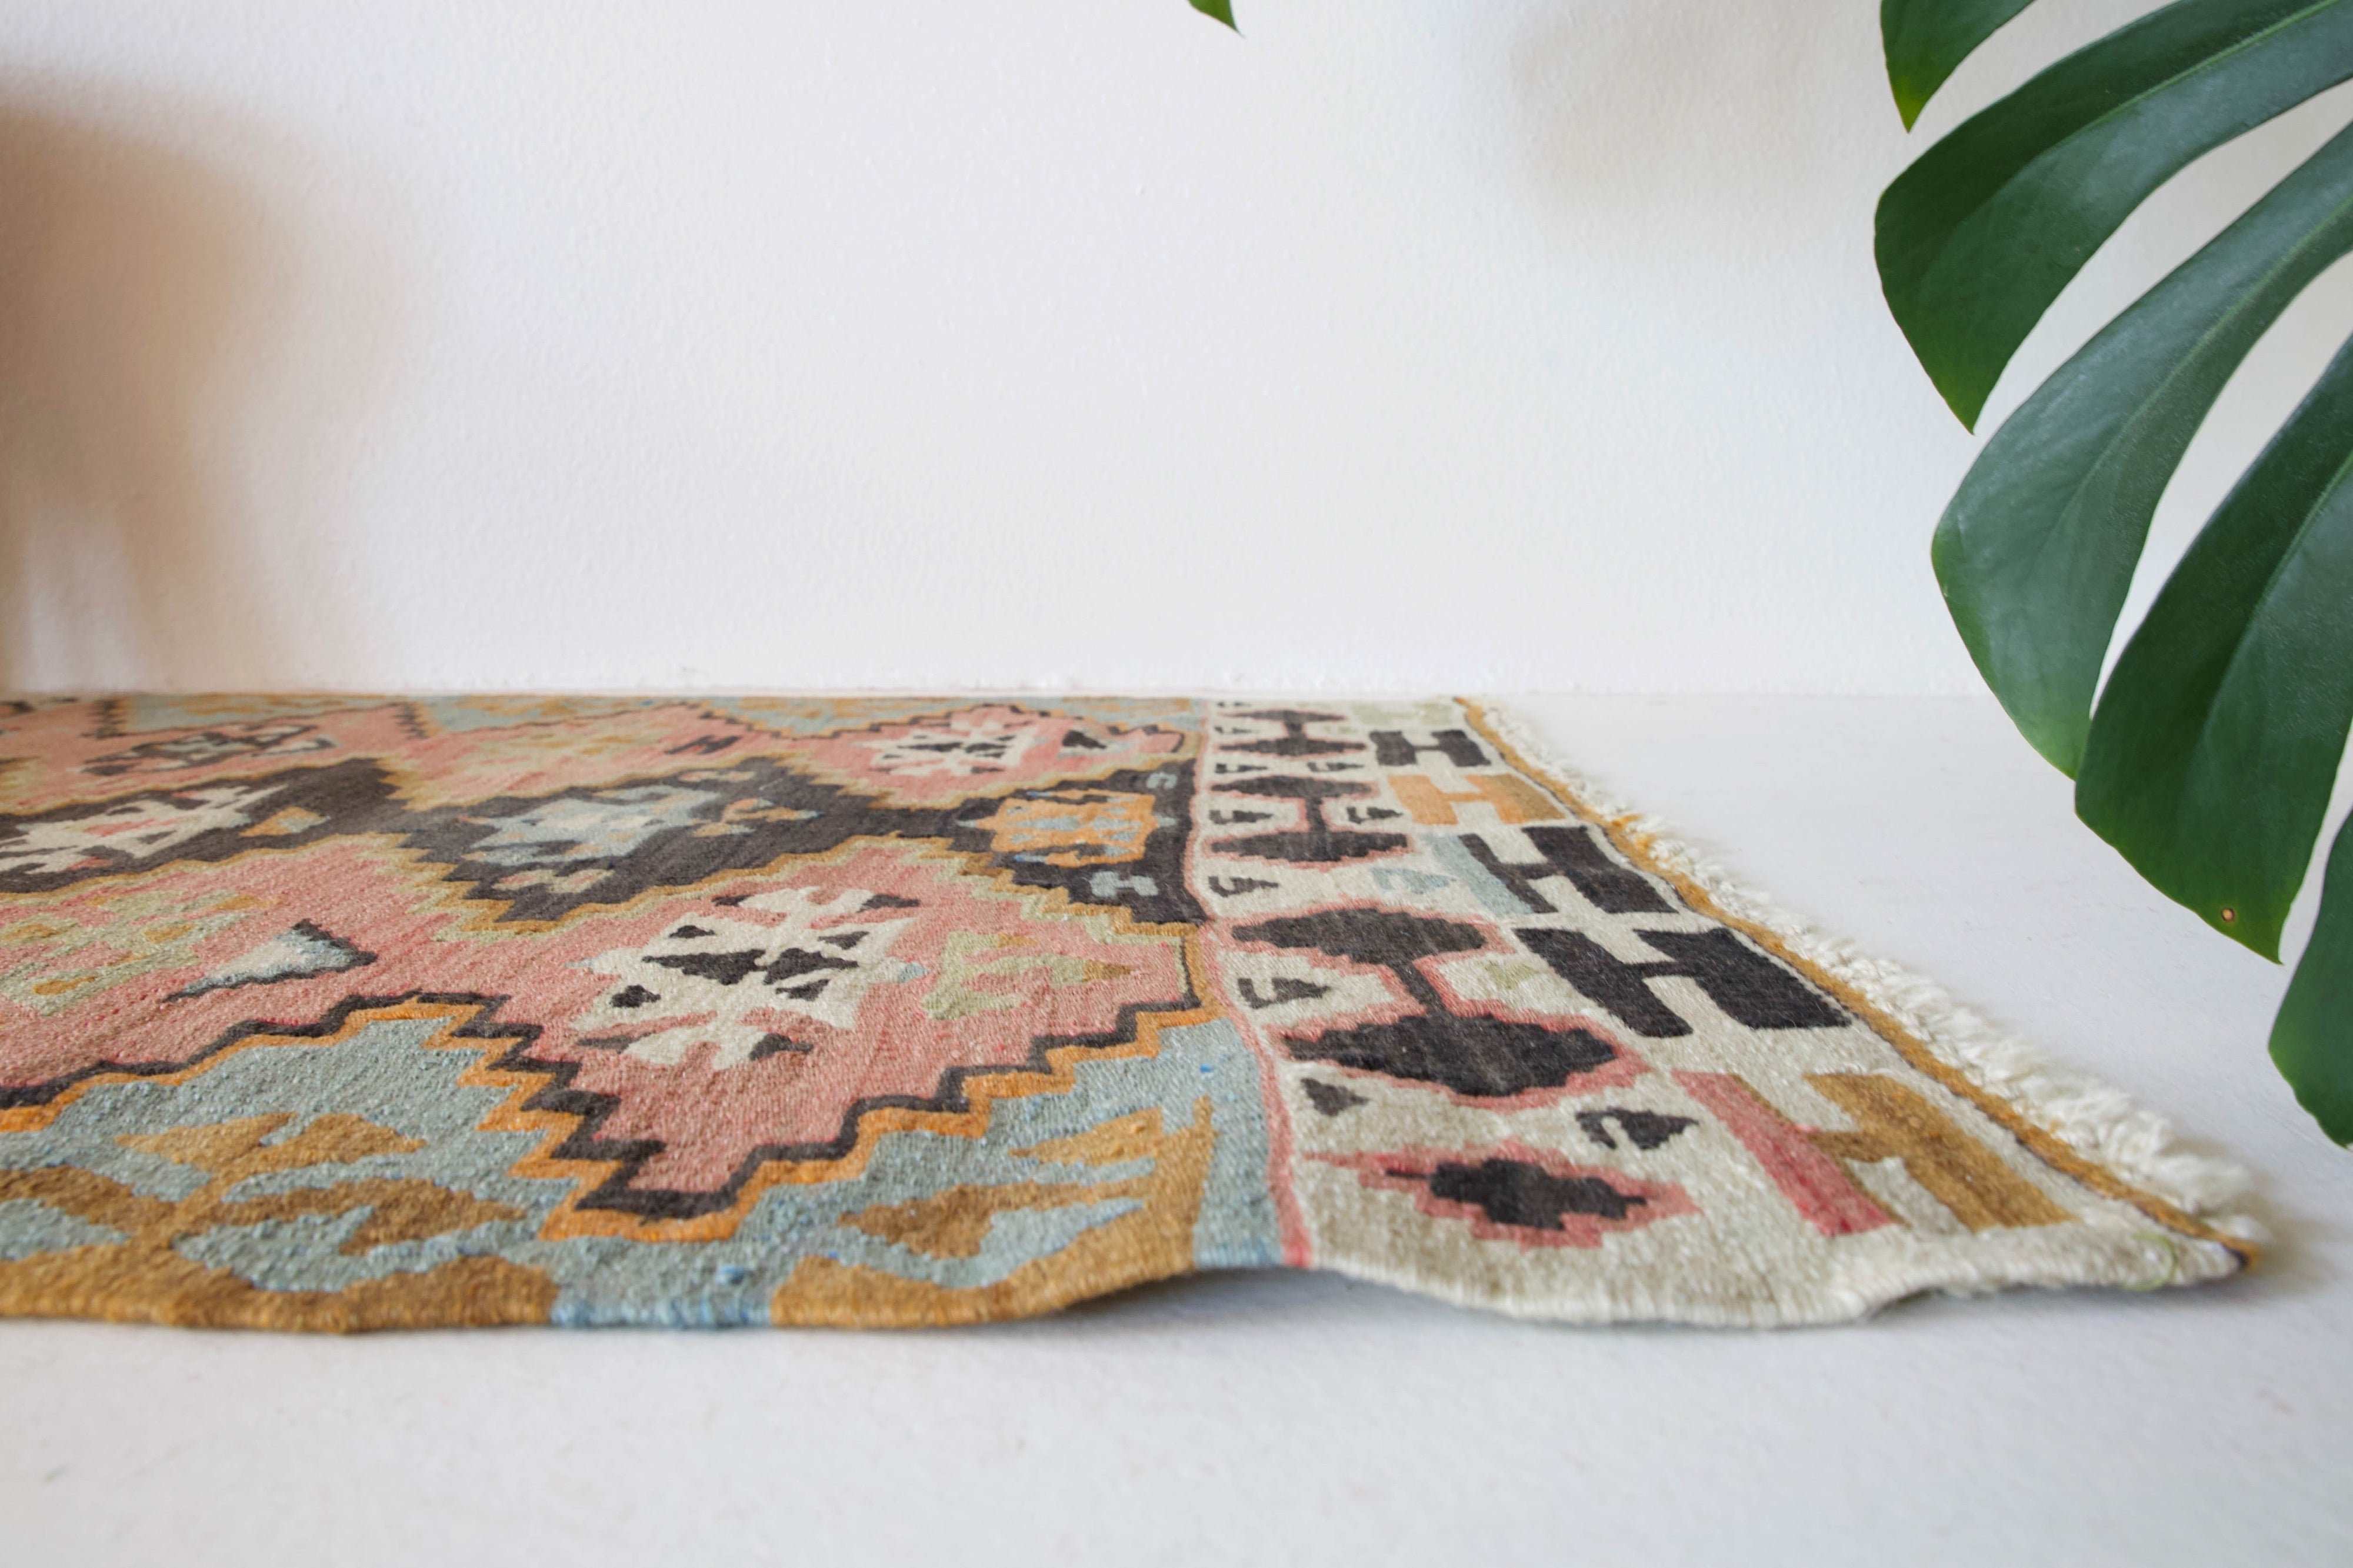 pile rug runner, Turkish rug, vintage rug, portland, rug shop, bright colors, wild shaman, runner rug, bold color, Portland, Oregon, rug store, rug shop, local shop, hallway runner, skinny runner, kilim runner,  earthy colors, faded colors, light colors